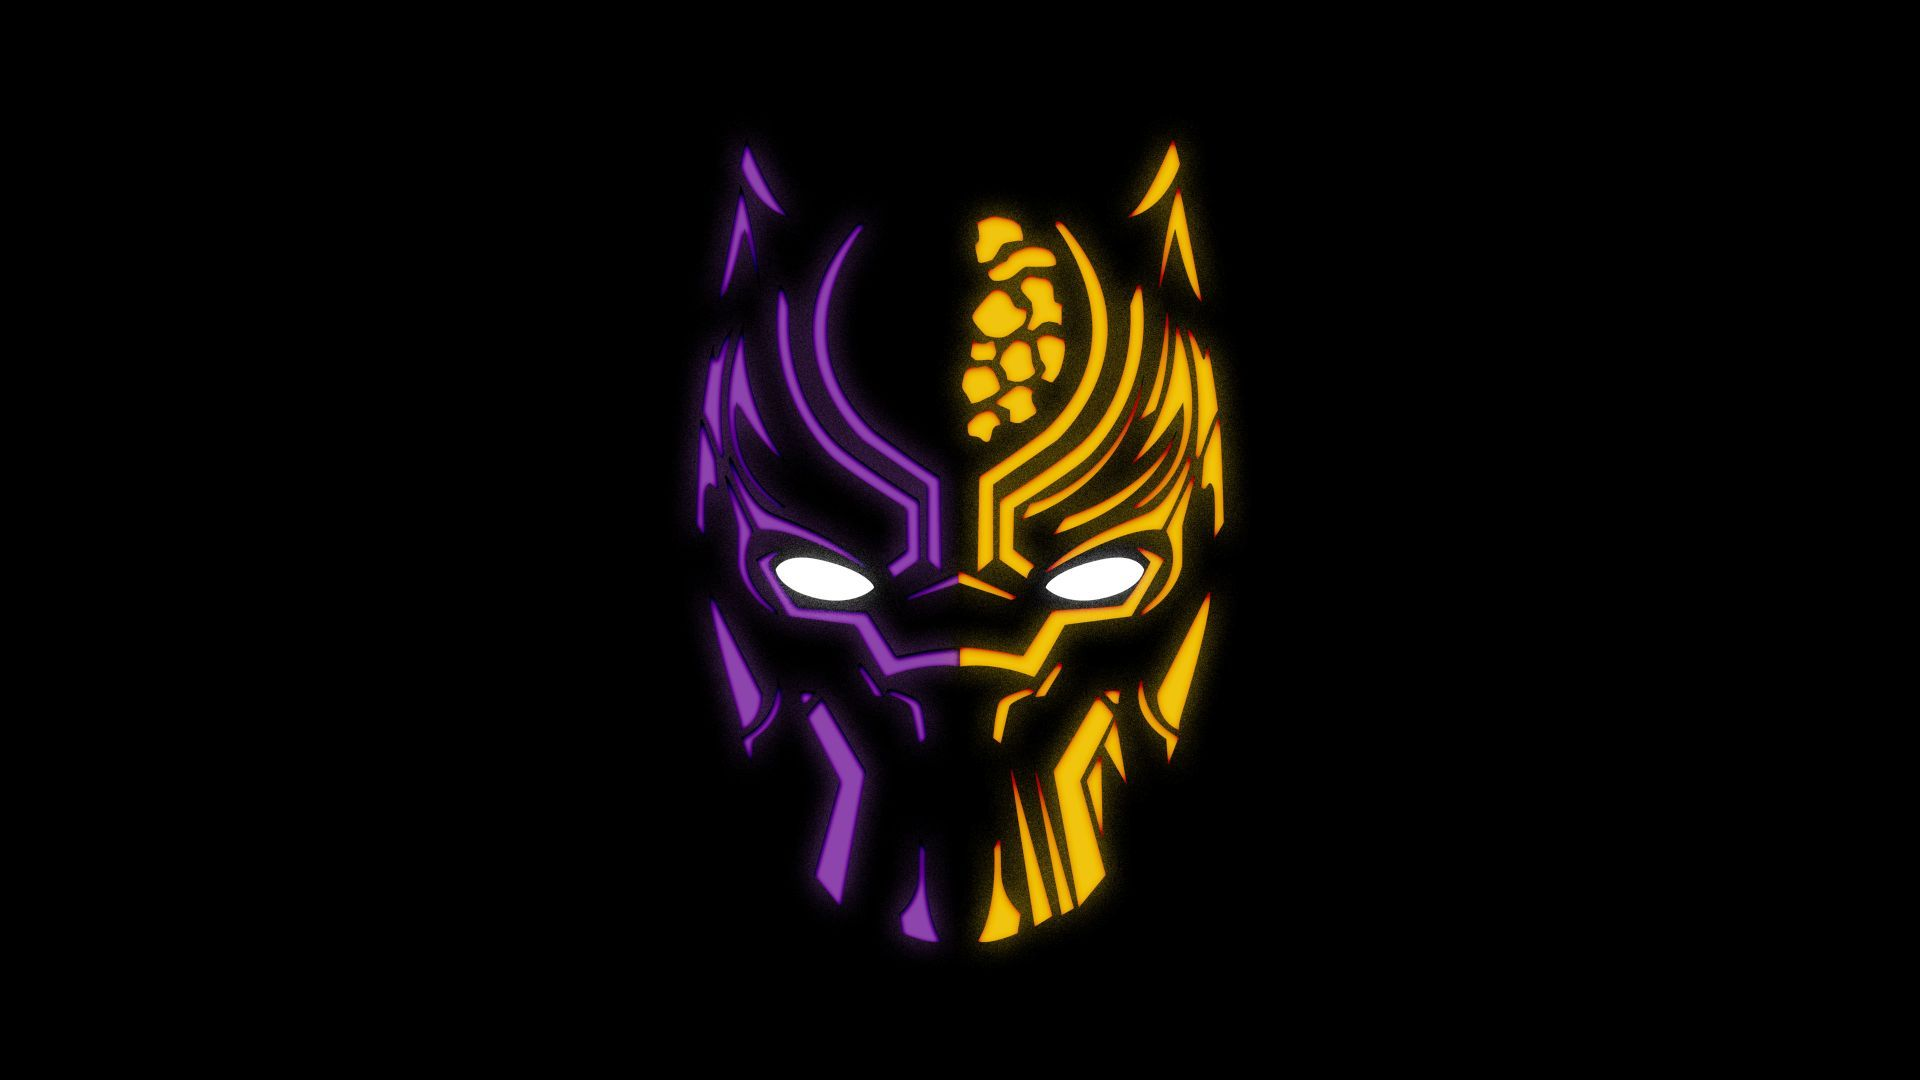 Download Wallpapers Of Black Panther Artwork Illustration Neon